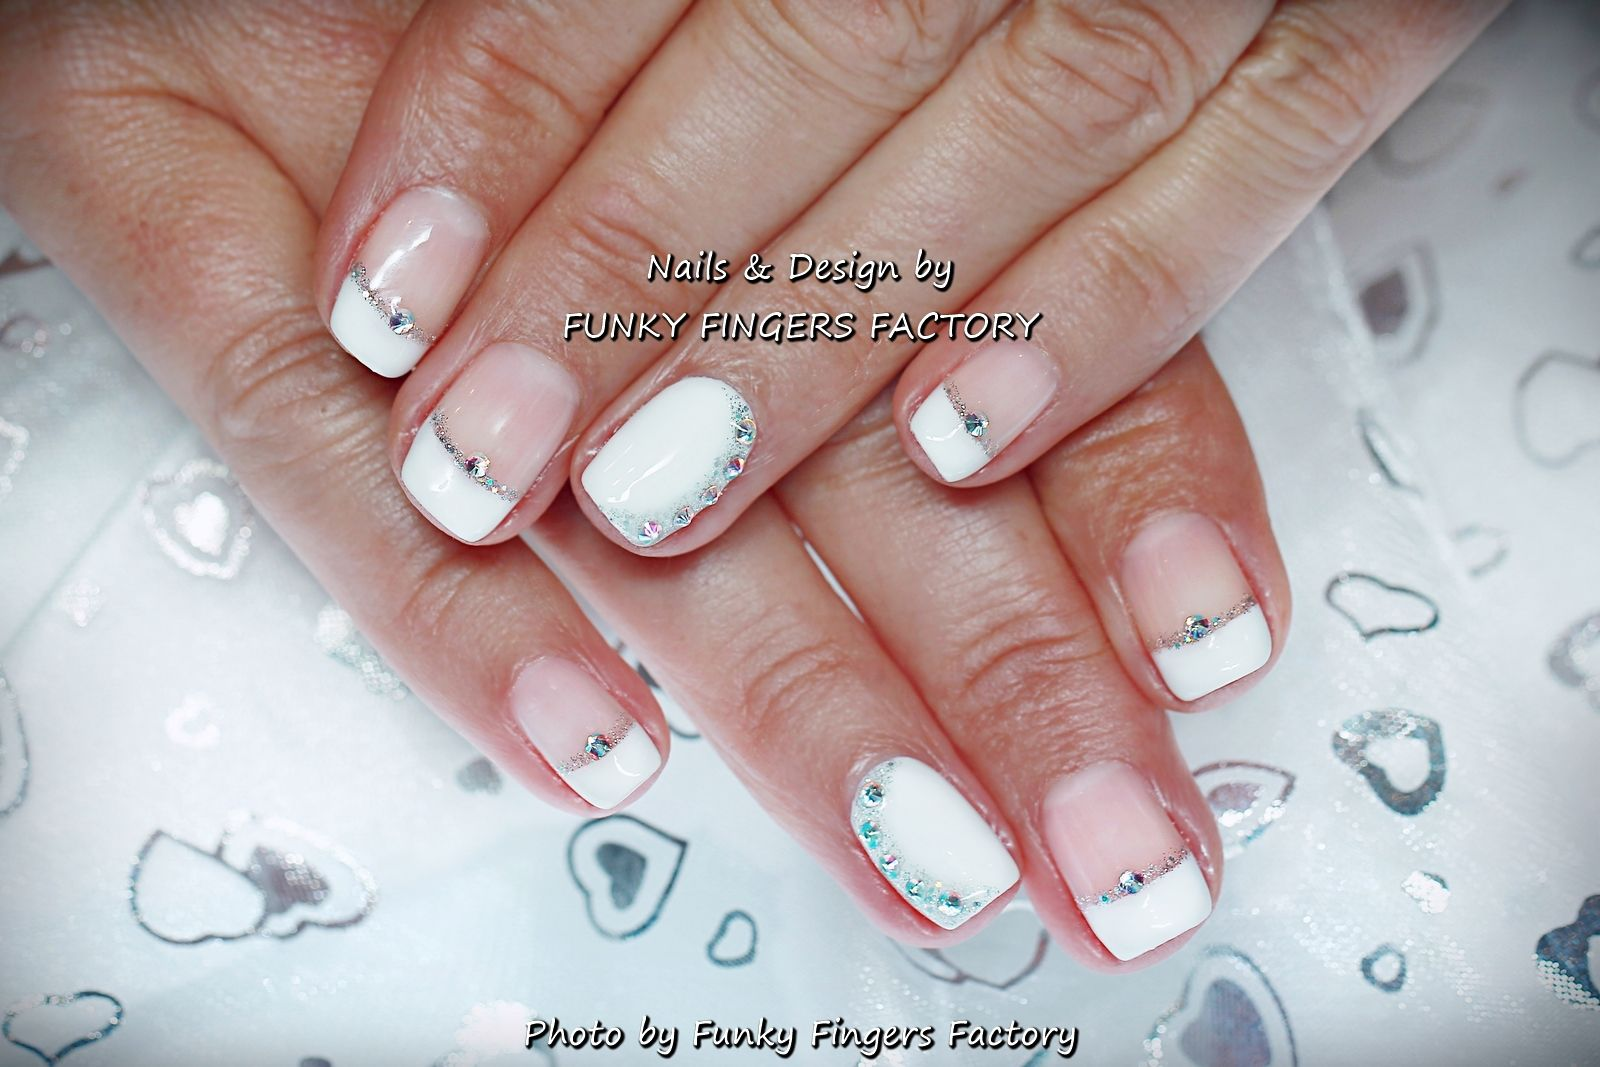 Gelish Wedding French Manicure With Swarovski Crystals By Funky Fingers Factory